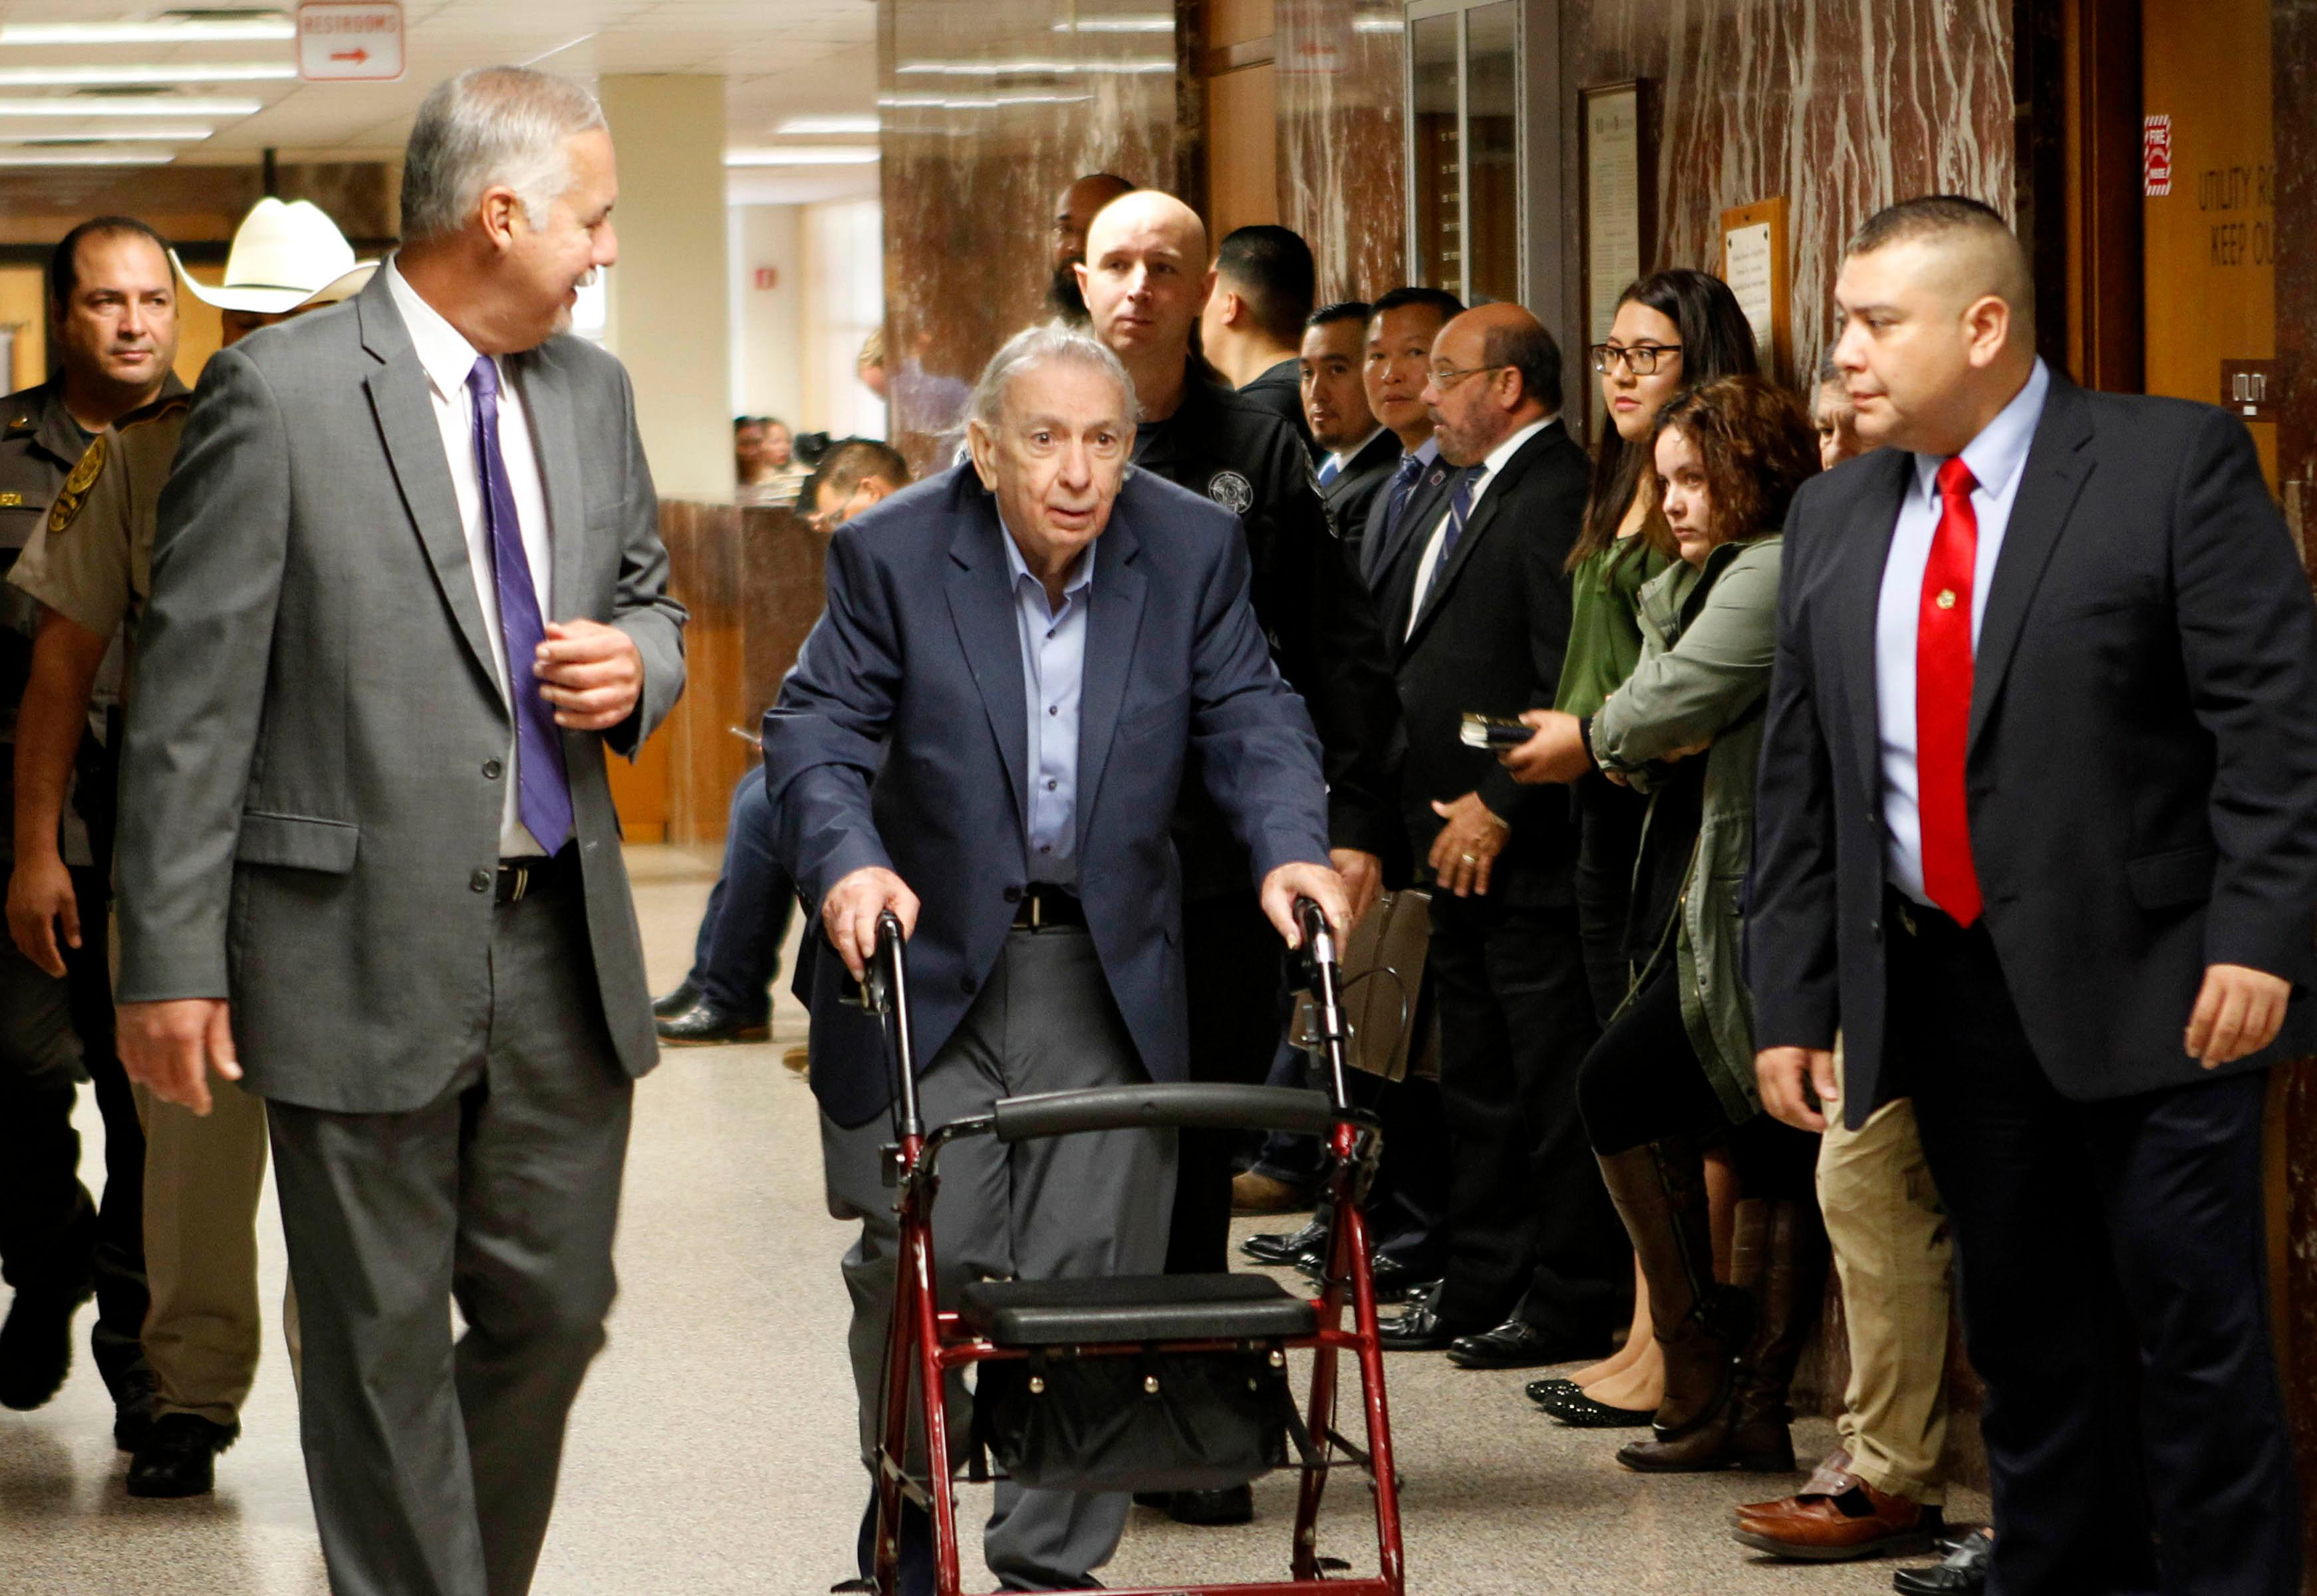 John Bernard Feit walks down the hallway to the 92nd state District Court for the fourth day of his trial for the murder of Irene Garza Tuesday, December 5, 2017, at the Hidalgo County Courthouse in Edinburg.  (Nathan Lambrecht/The Monitor/Pool)